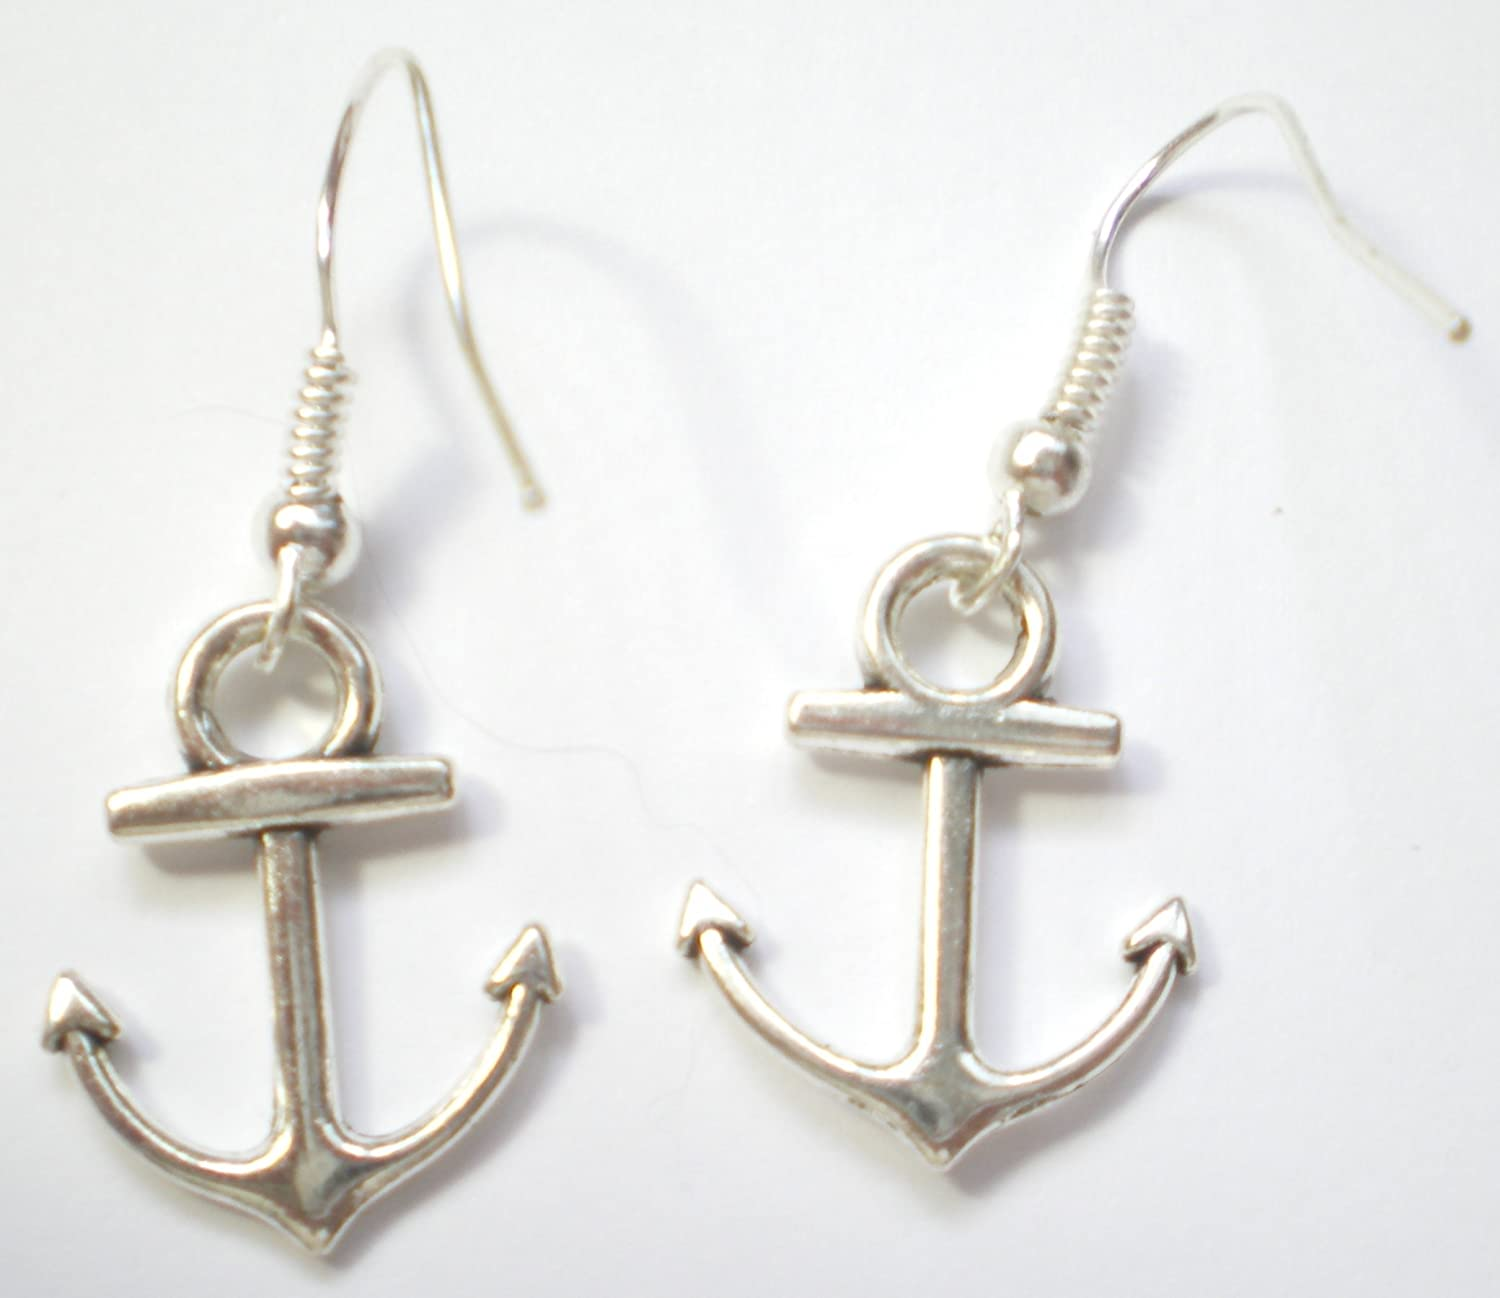 Elegant Fashion Boat Anchor Marine Silver Tone Earring Drop Dangle Fish Hook Hot Pendant Handmade Fashion by Louiselle Collection Bestdealhere SHS27